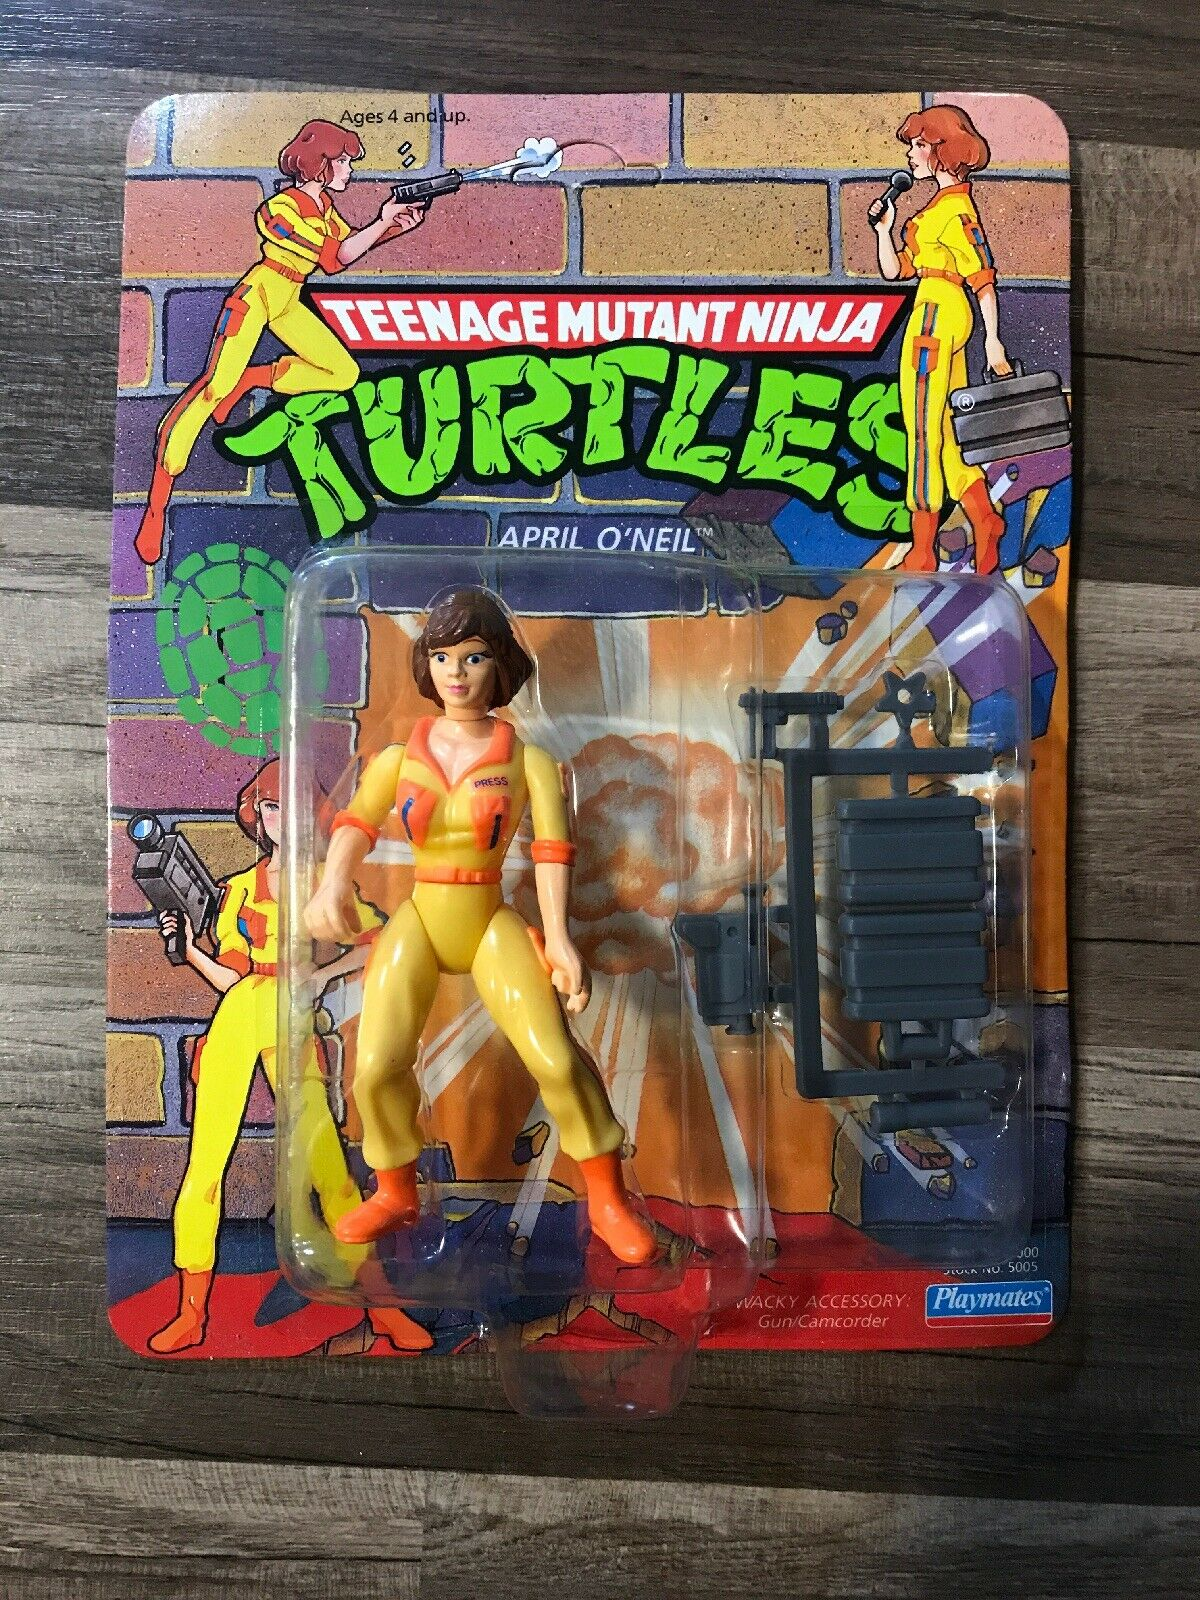 1990 Teenage Mutant Ninja Turtles April O'Neil Action Figure Unpunched NIP New